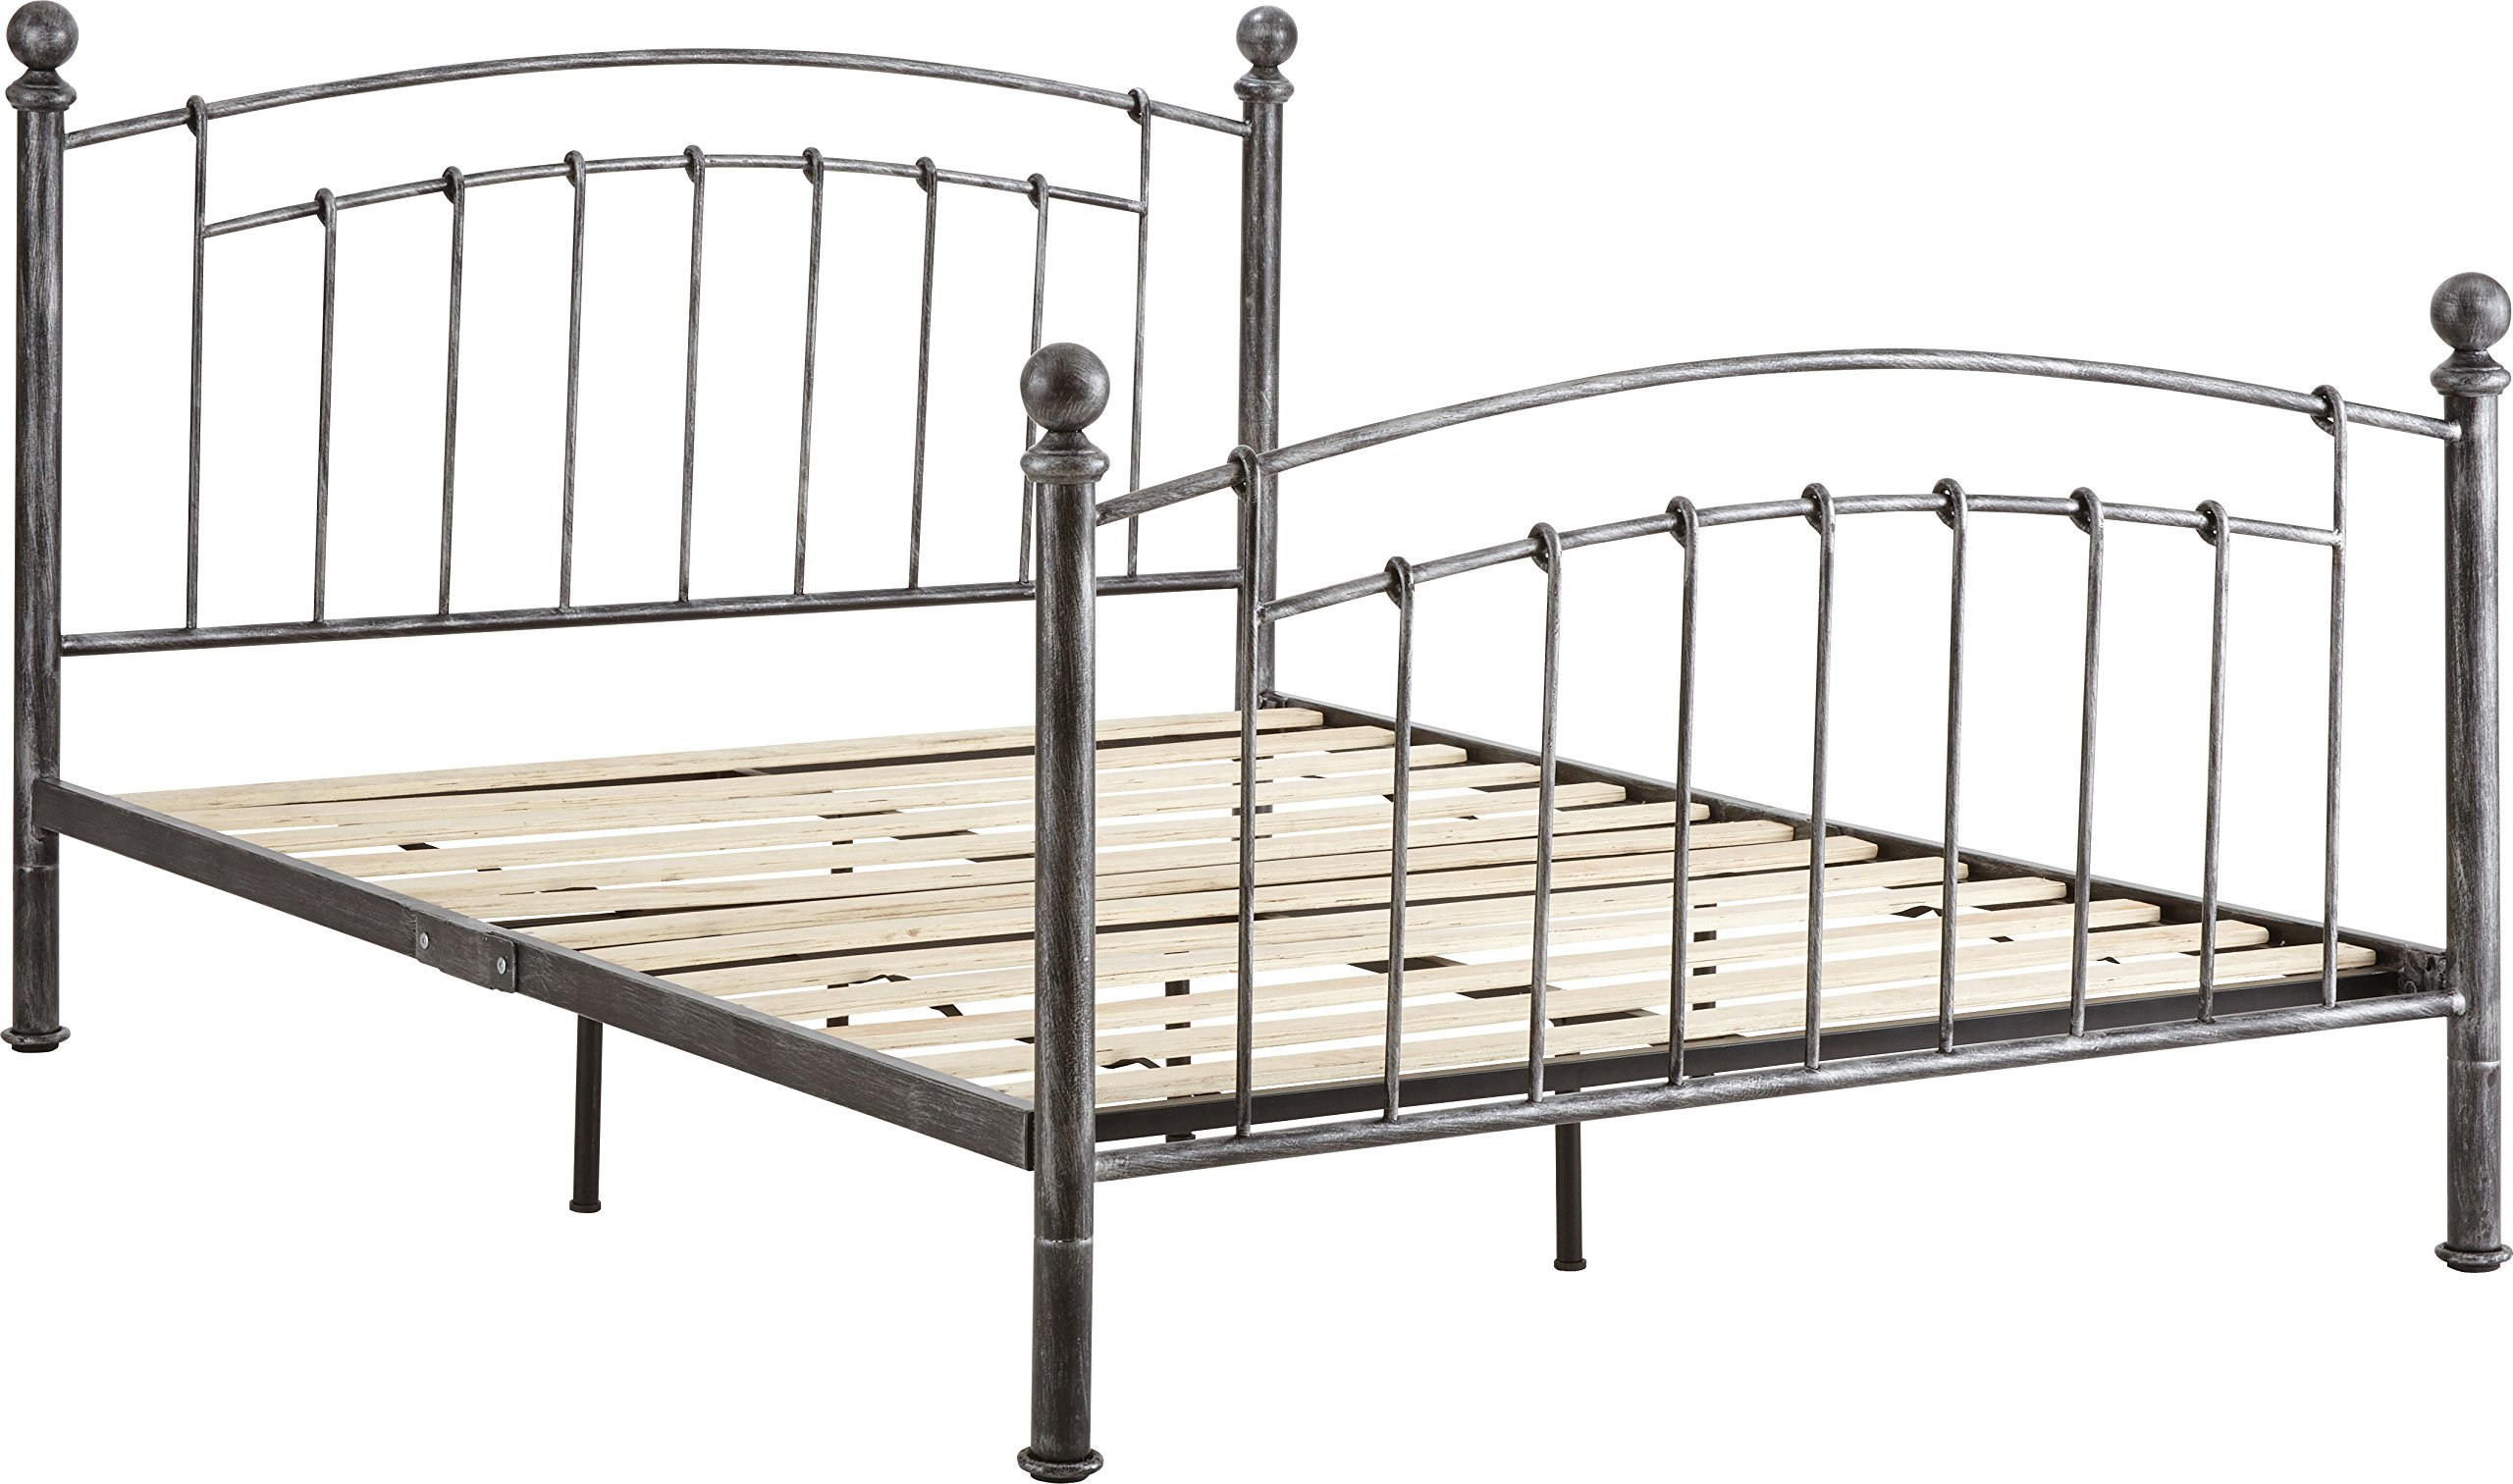 Flex Form Chandler Metal Platform Bed Frame/Mattress Foundation with Headboard and Footboard, Queen